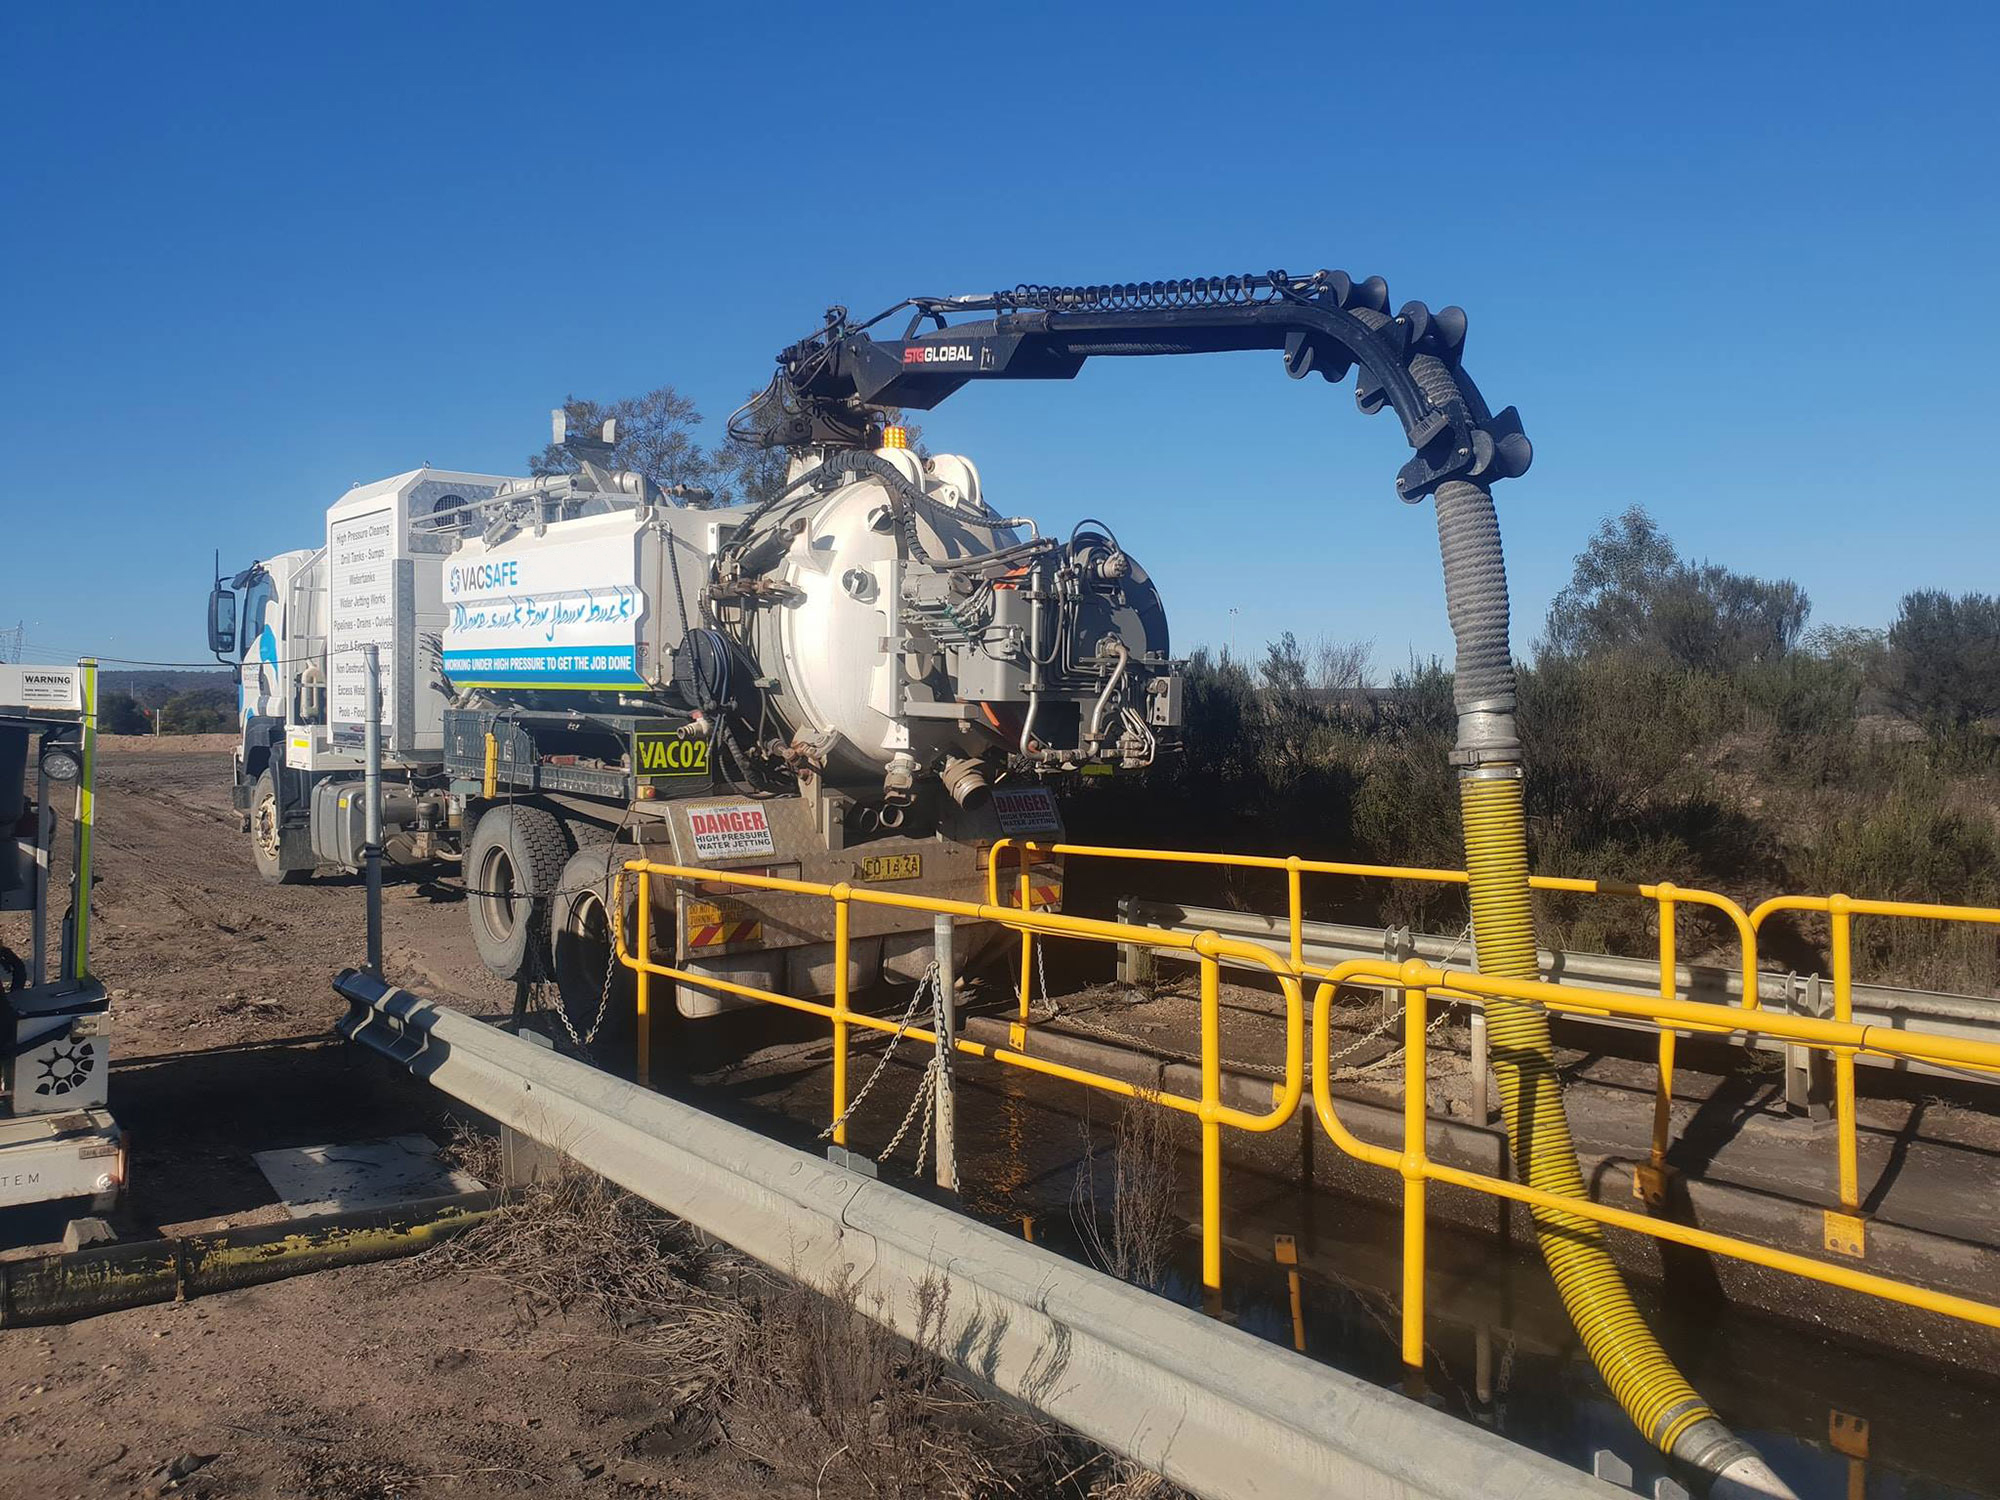 Vacsafe-major-water-and-waste-removal-new-south-wales-6000l-sucker-truck-hire-mudgee